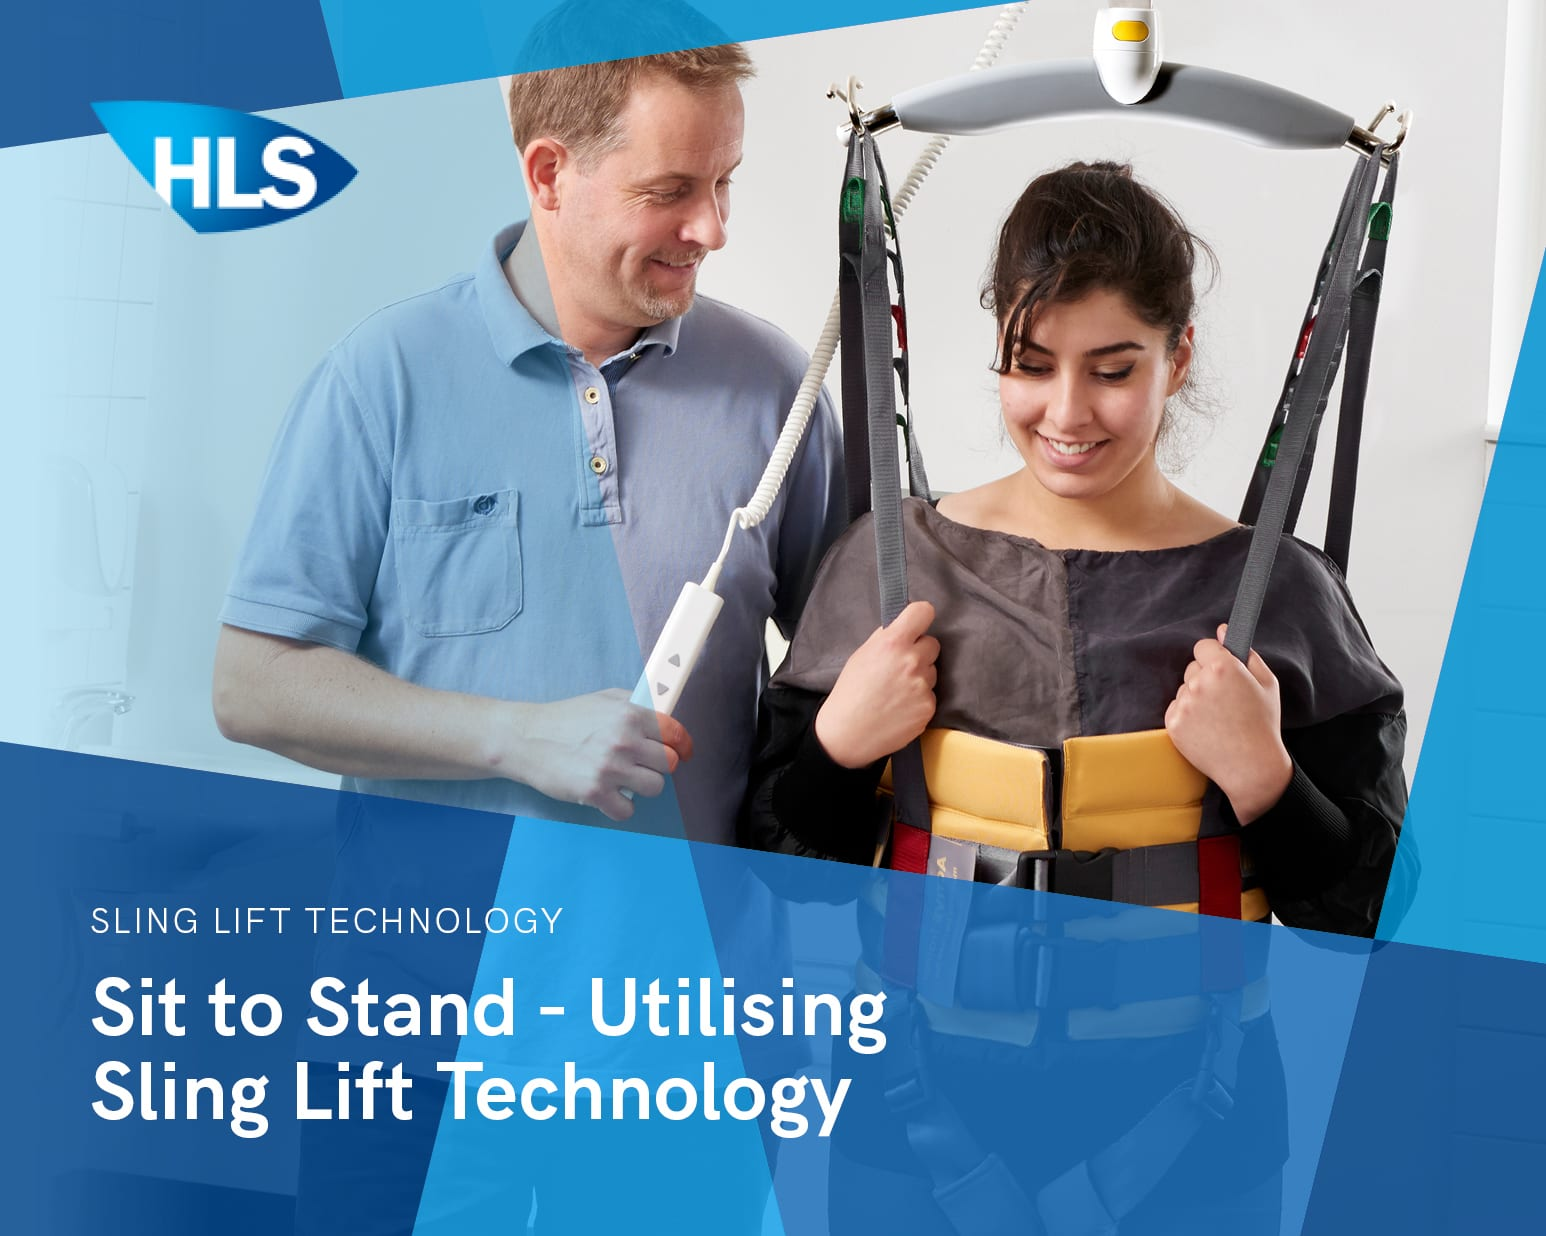 Sit to Stand - Utilising Sling Lift Technology